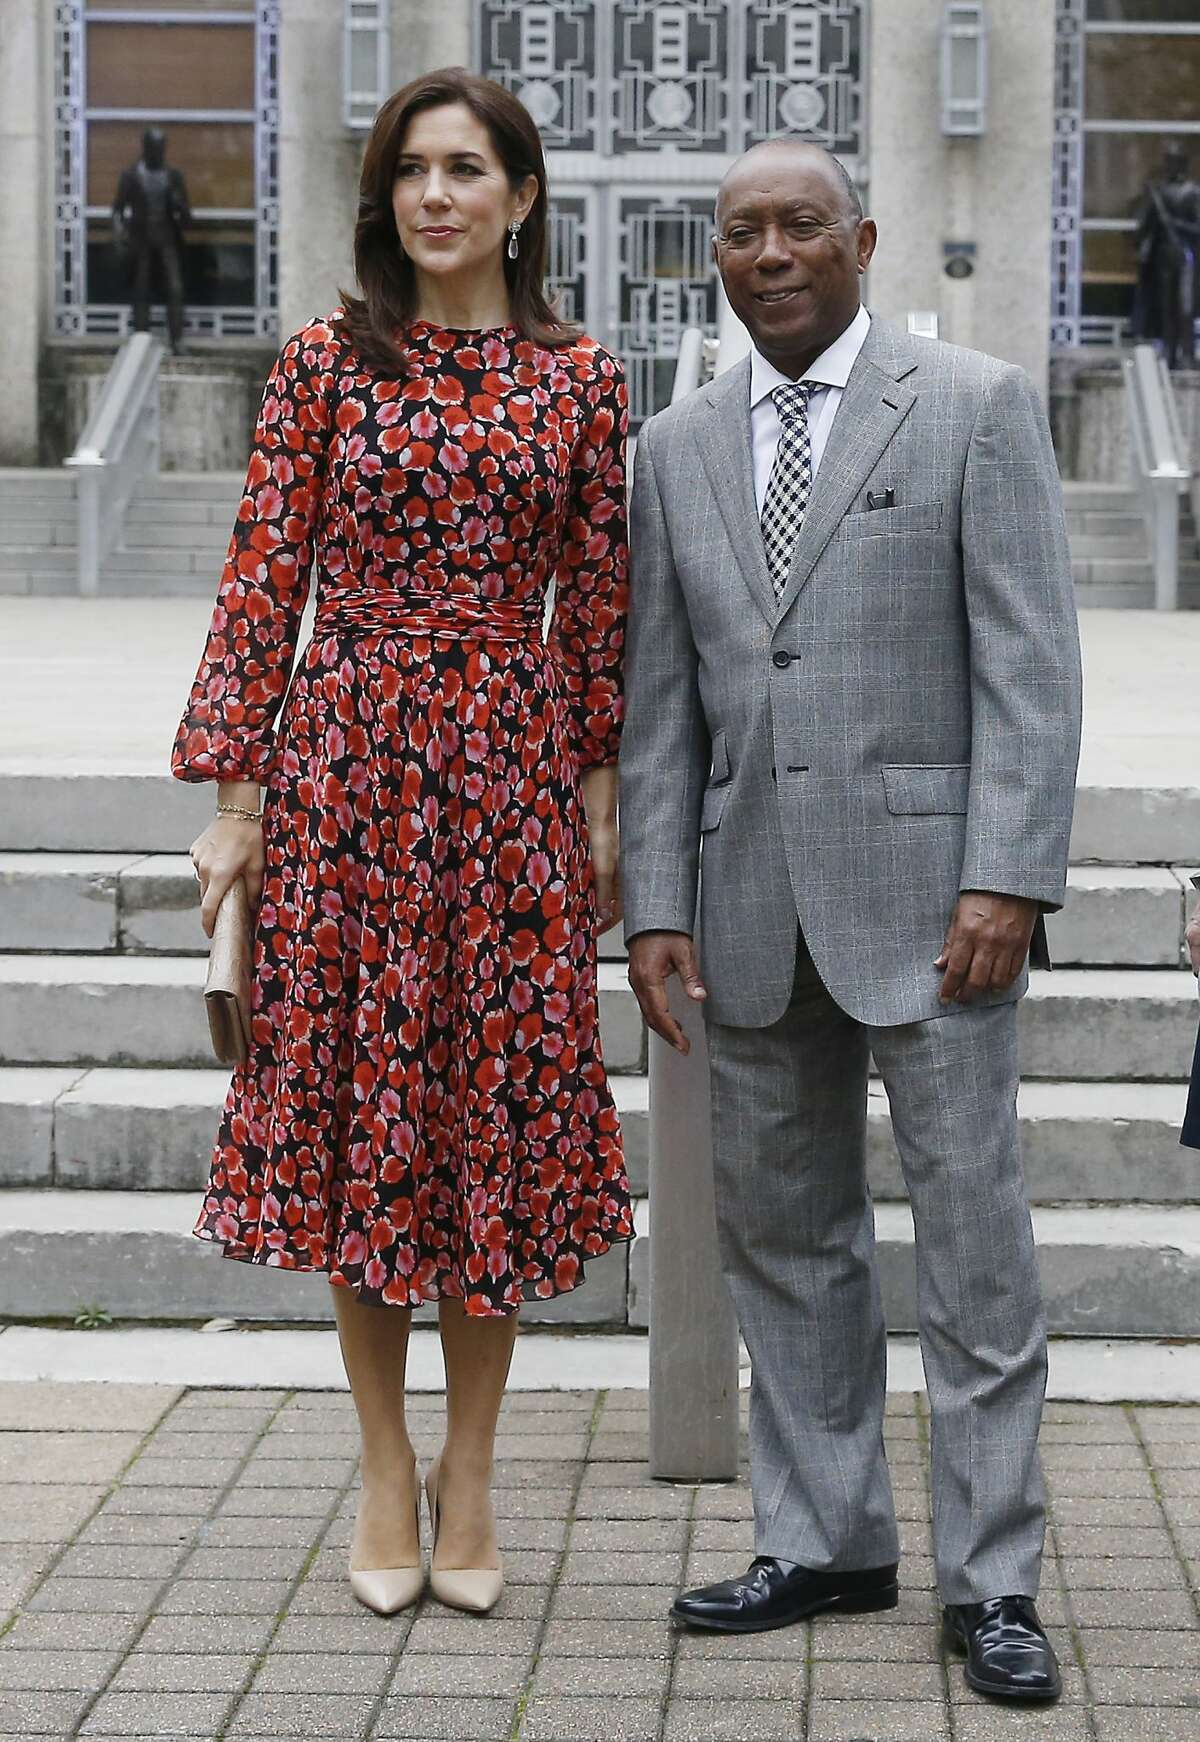 Mary, Crown Princess of Denmark and Houston Mayor Sylvester Turner on the steps of city hall as she visits Houston on March 12, 2019 in Houston, Texas. (Photo by Bob Levey/Getty Images)